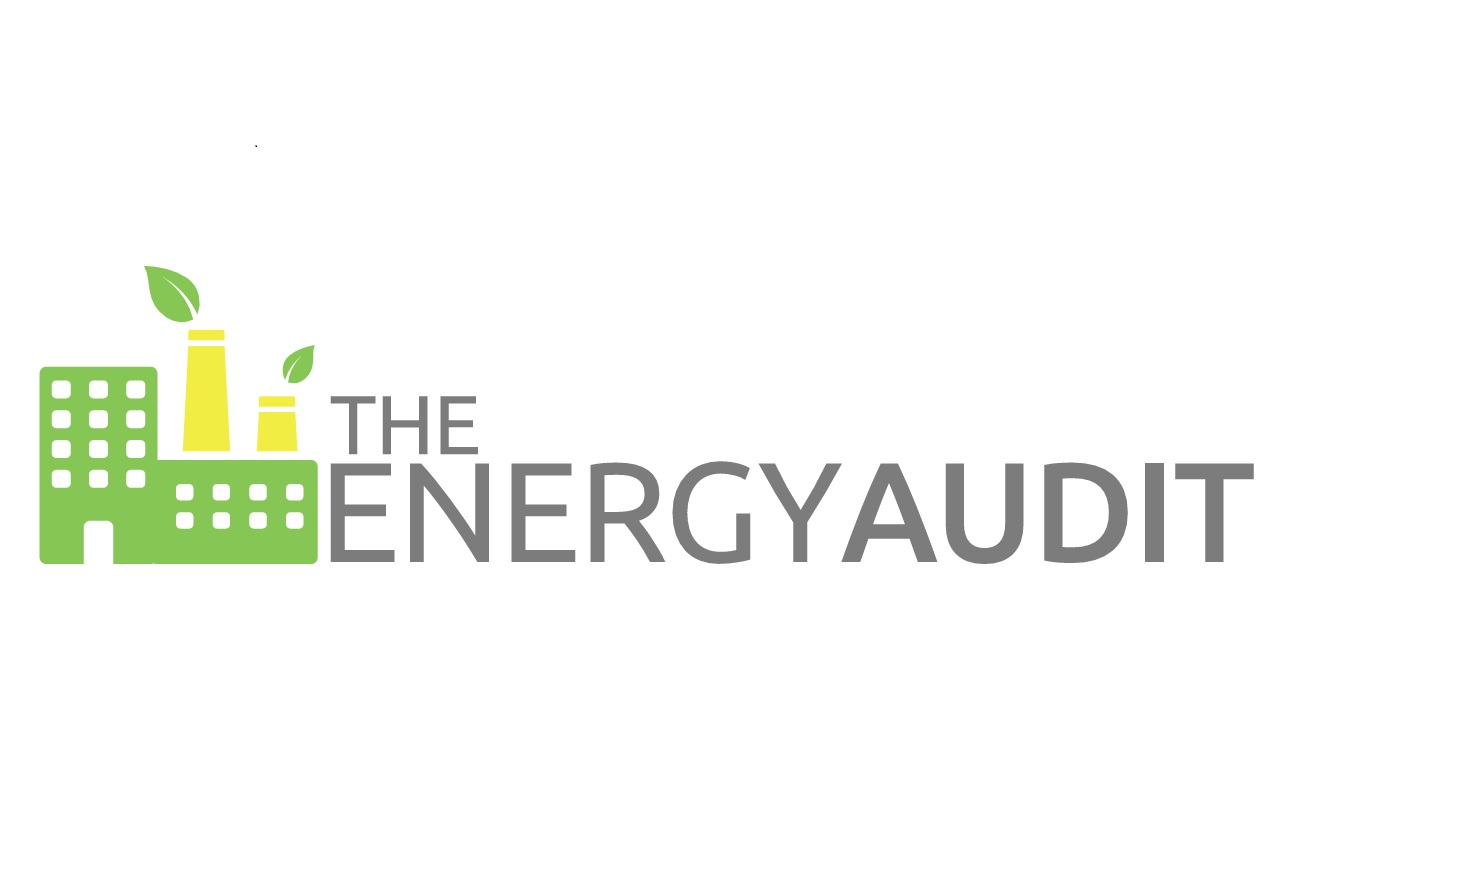 The Energy Audit, la startup nata sul Lago di Garda che ha conquistato l'Asia